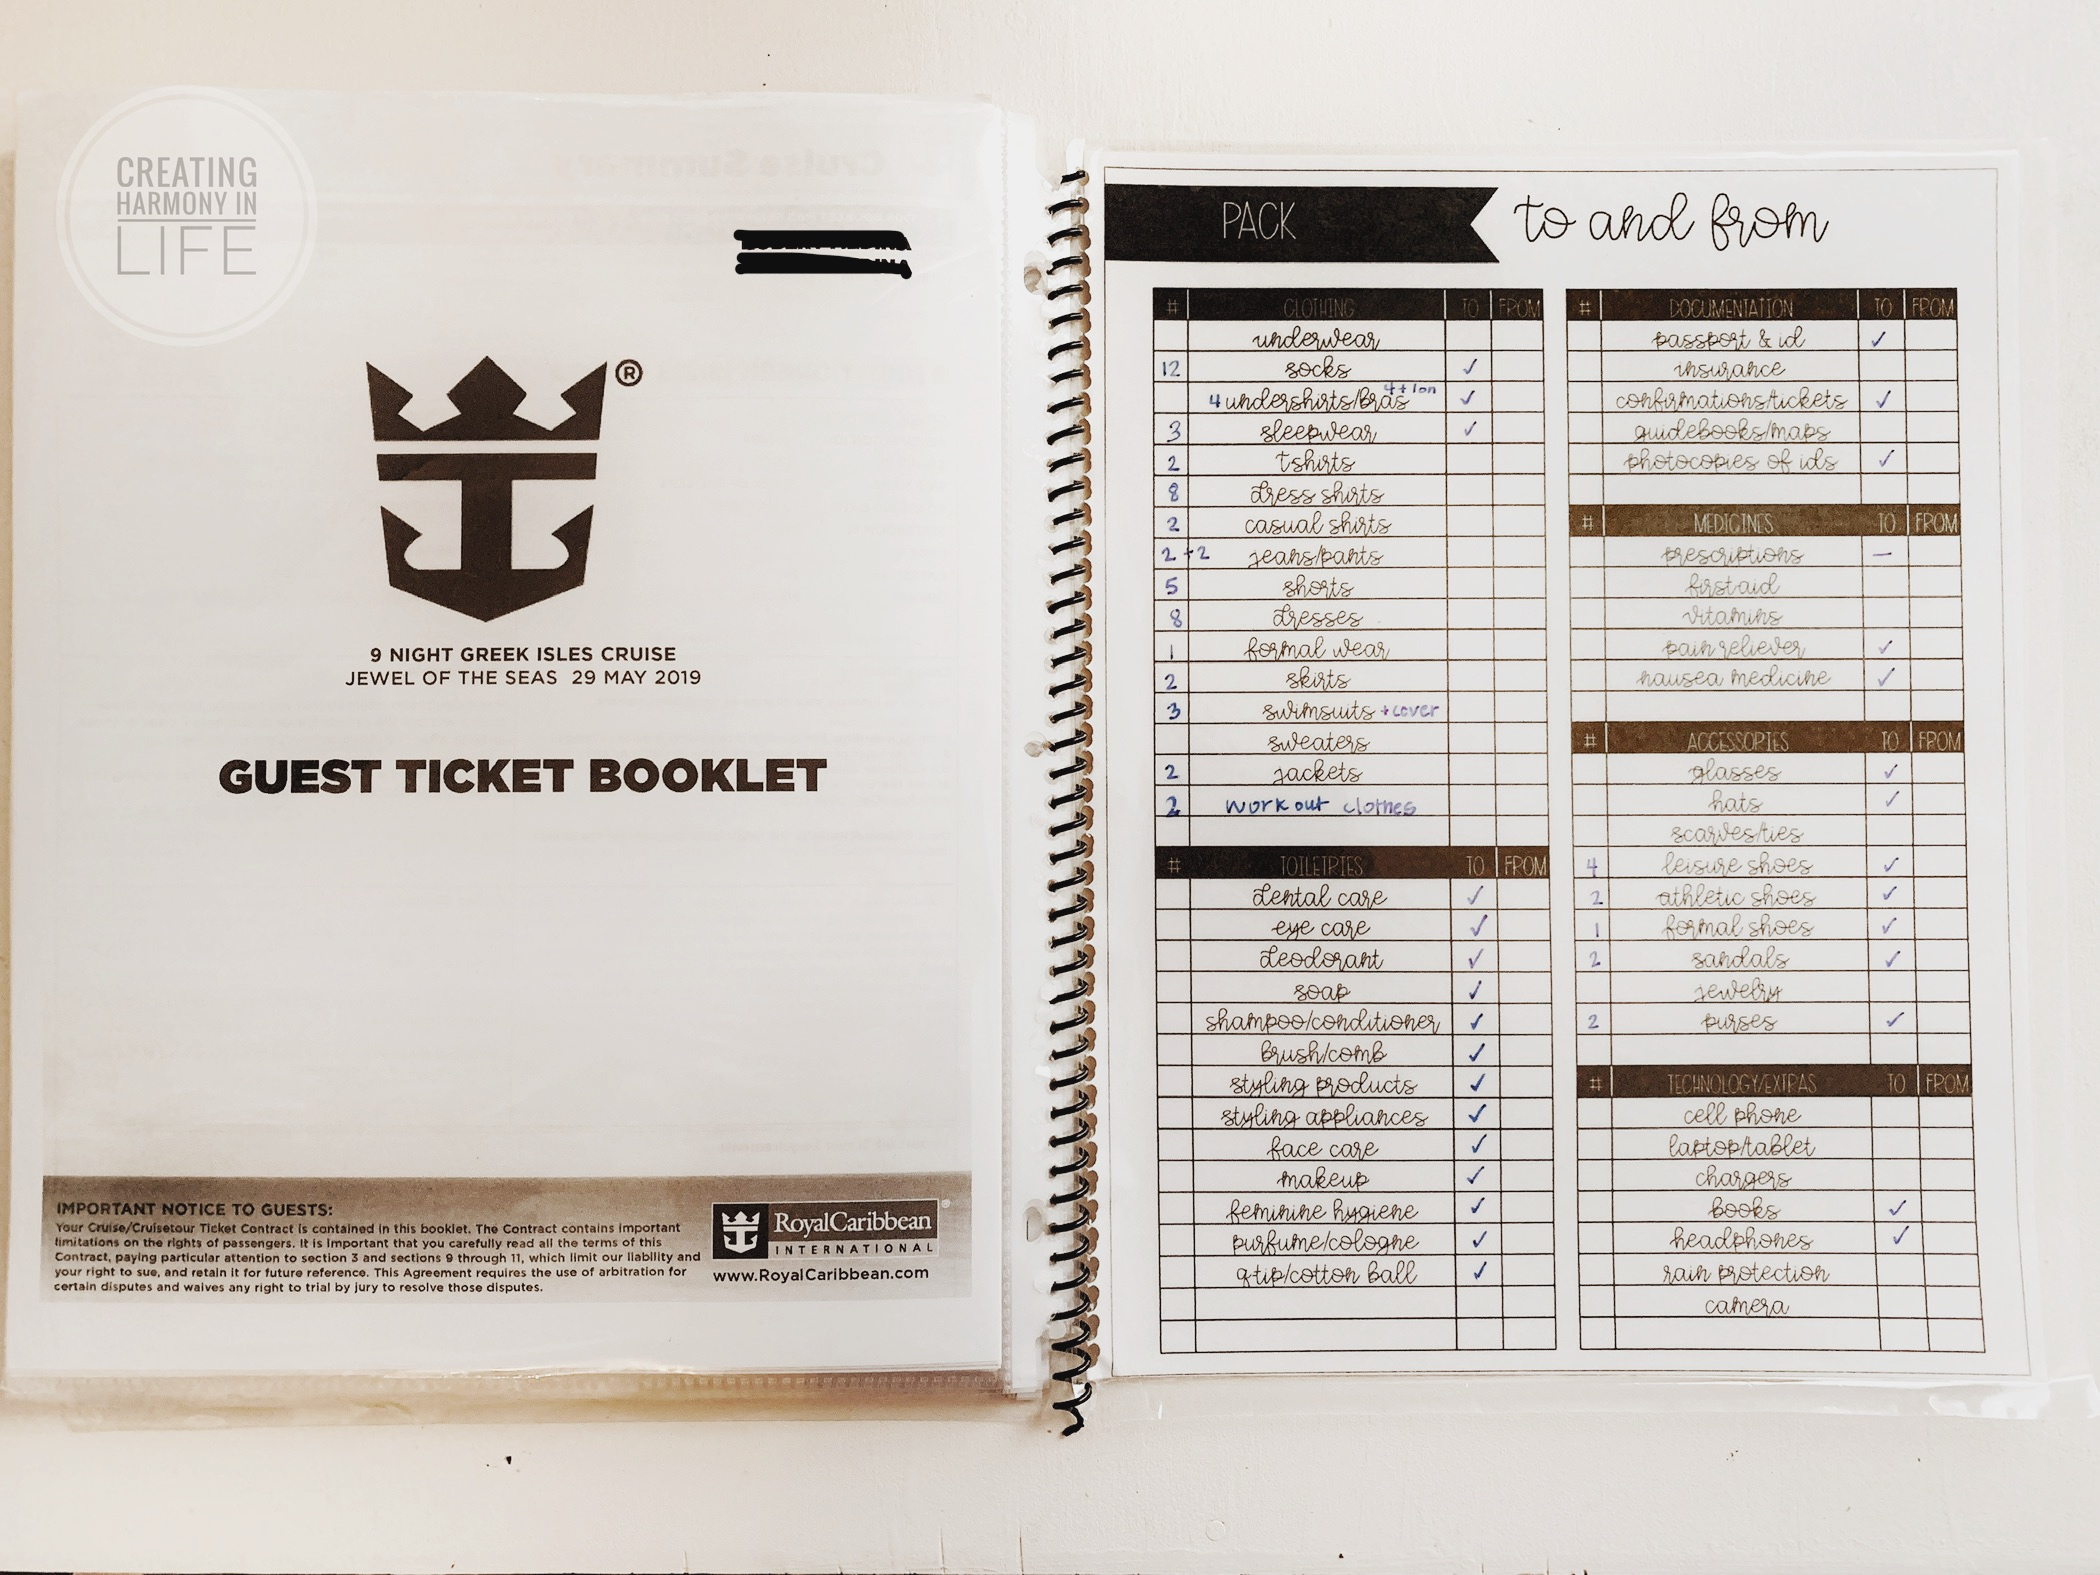 Our cruise guest booklet was stored in the back, along with the laminated packing list to check going and coming back.